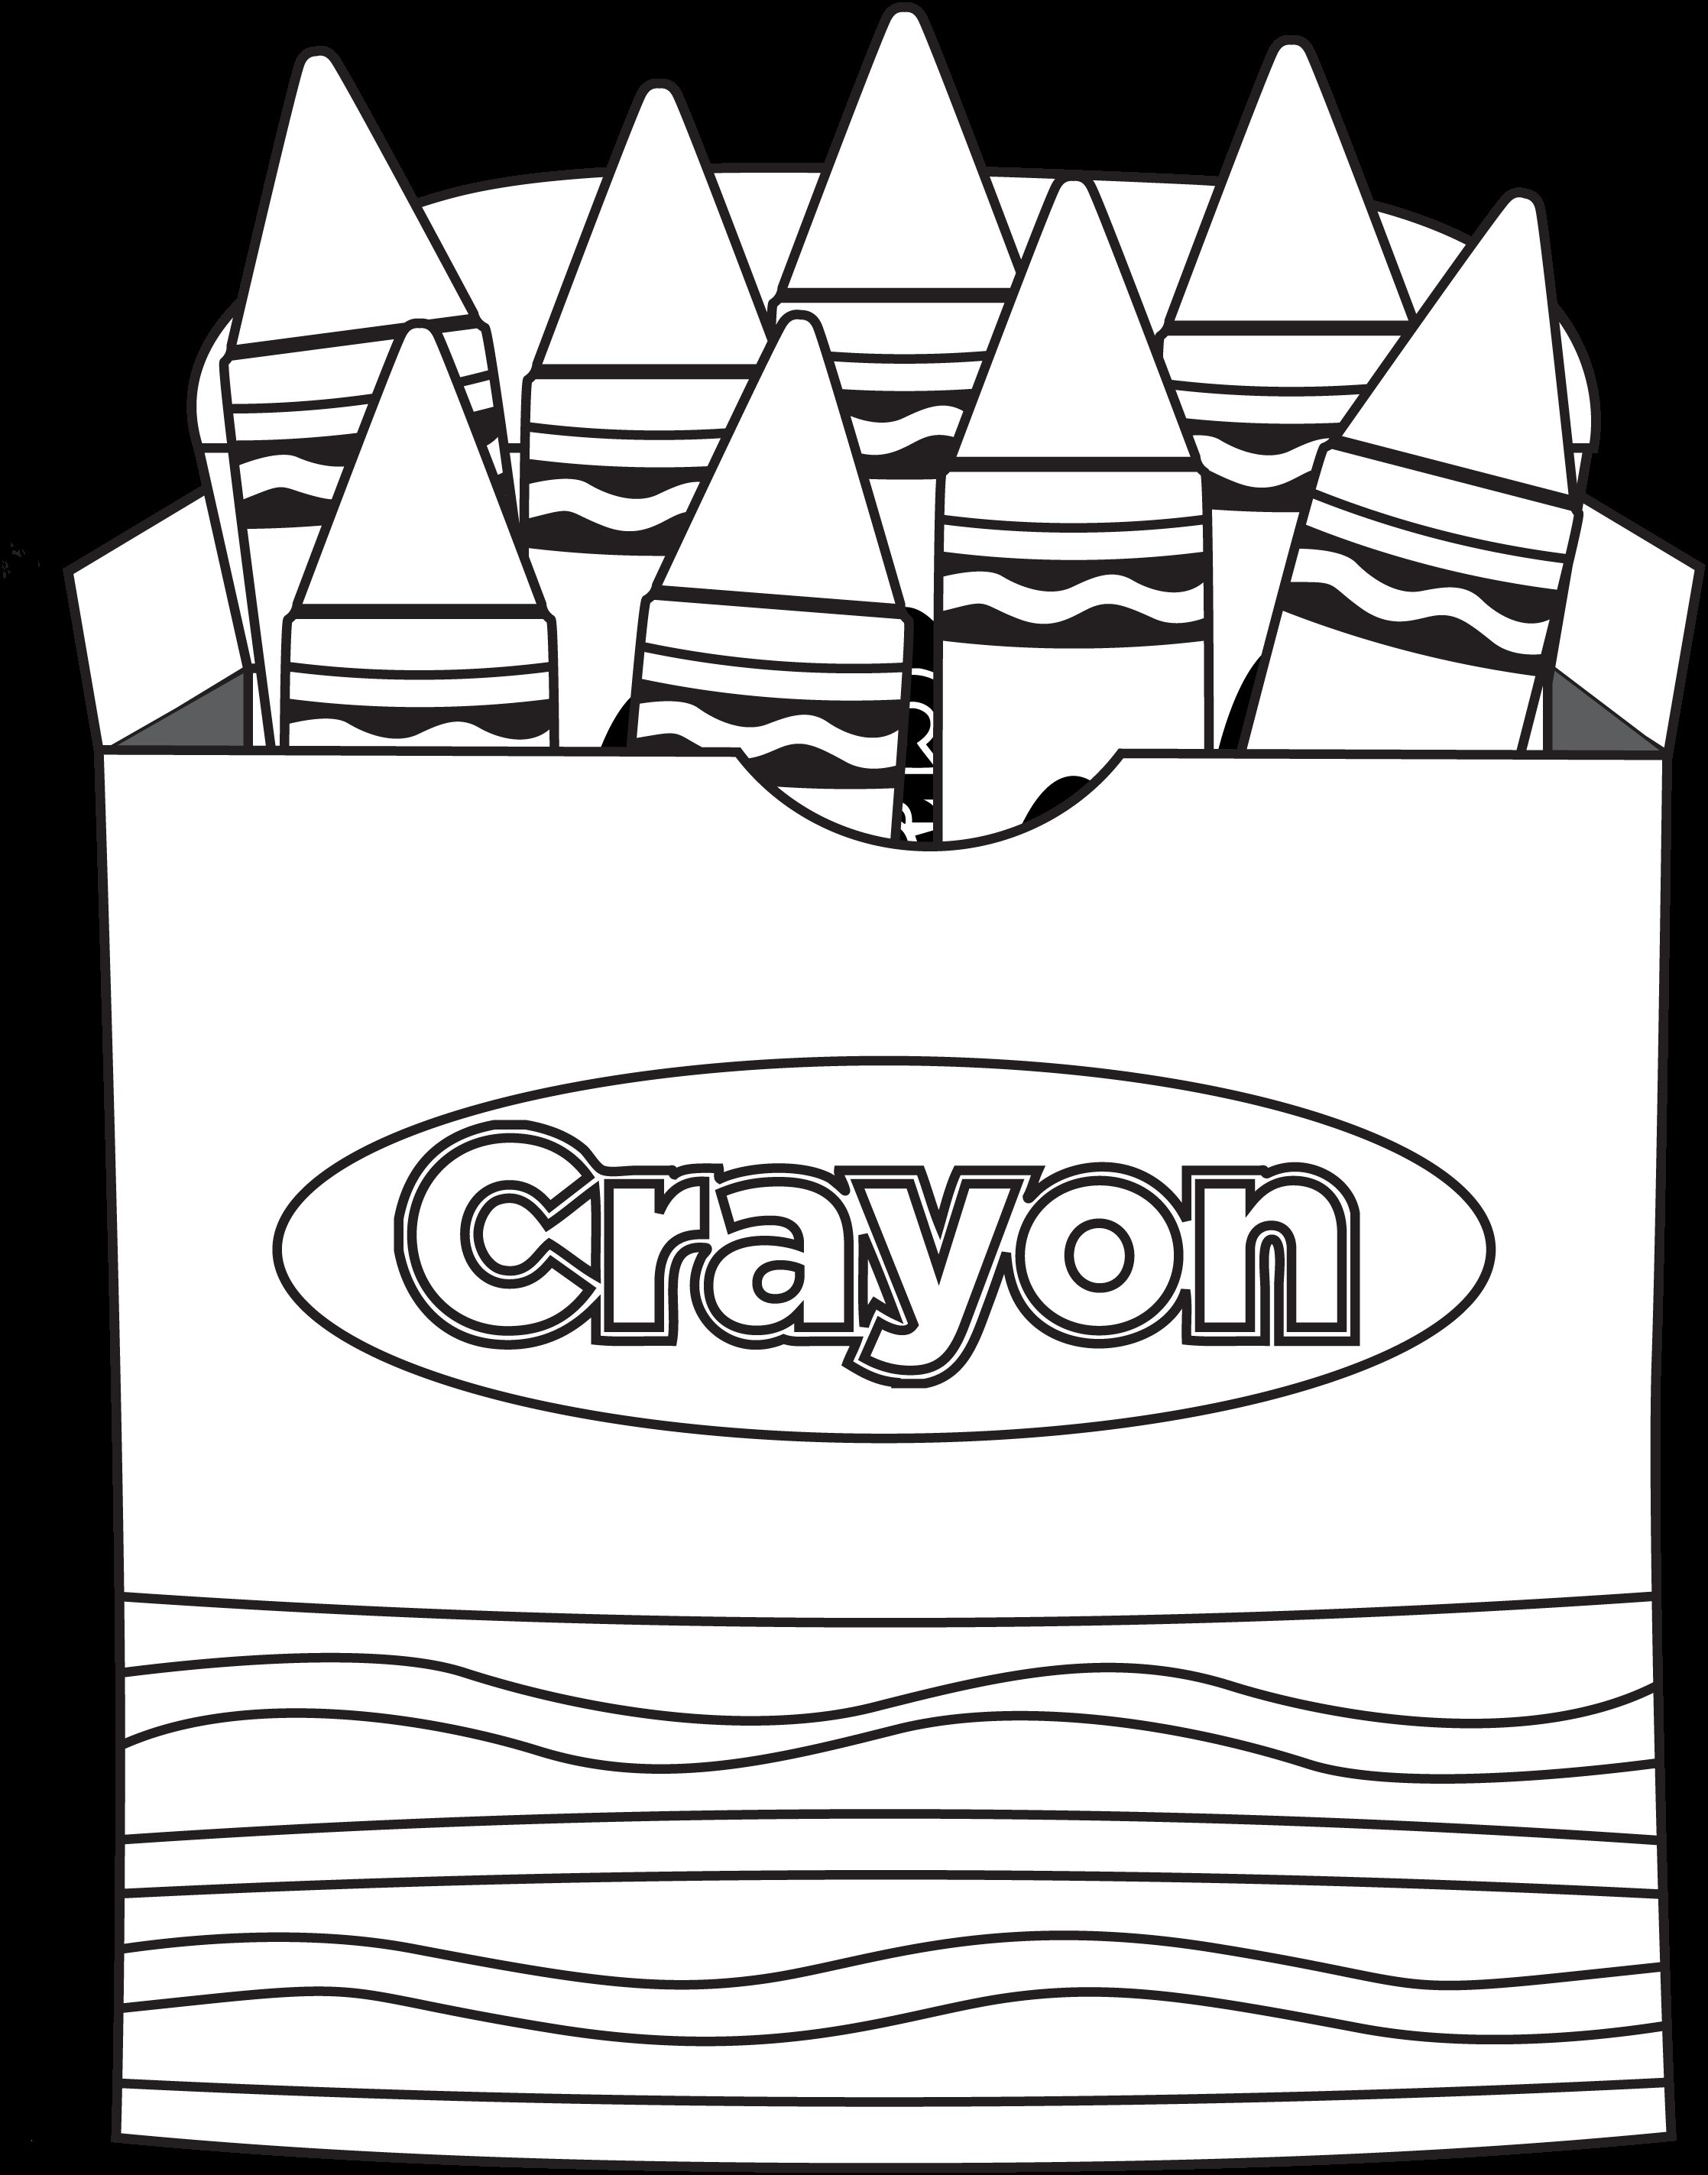 Crayon Coloring Pages  Printable 19j - Save it to your computer